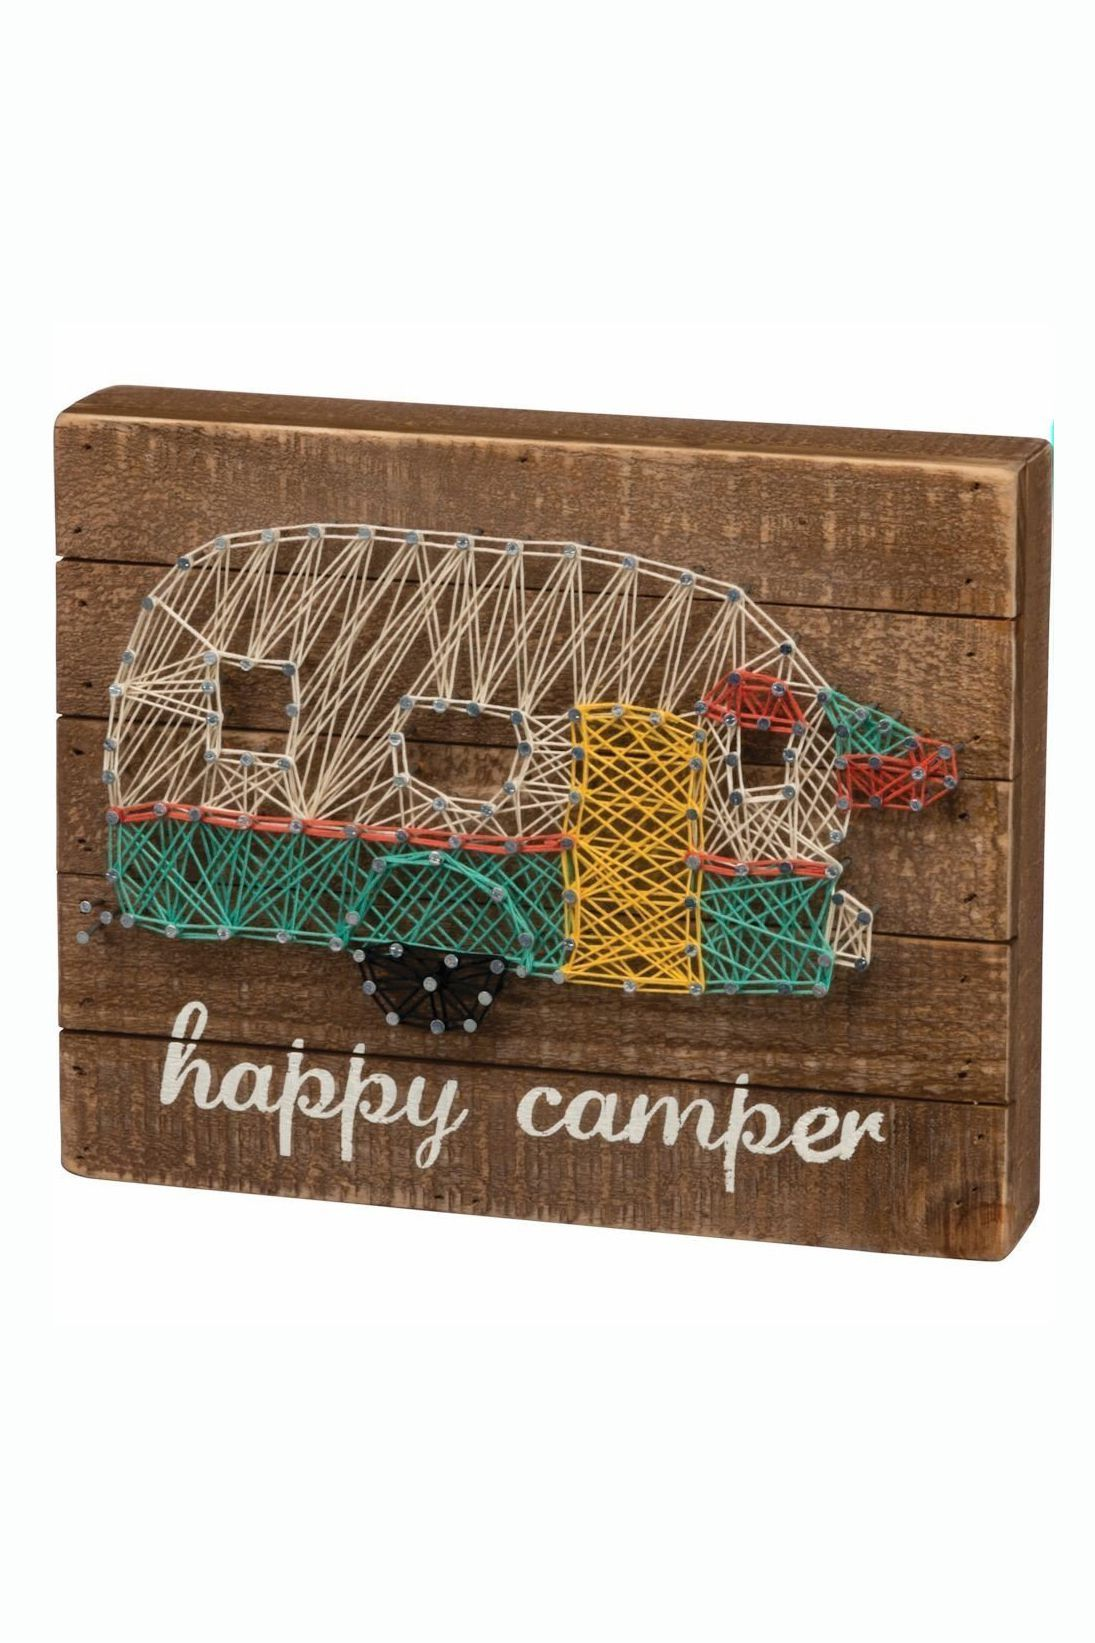 photo regarding Free Printable Camping Signs named Delighted Camper